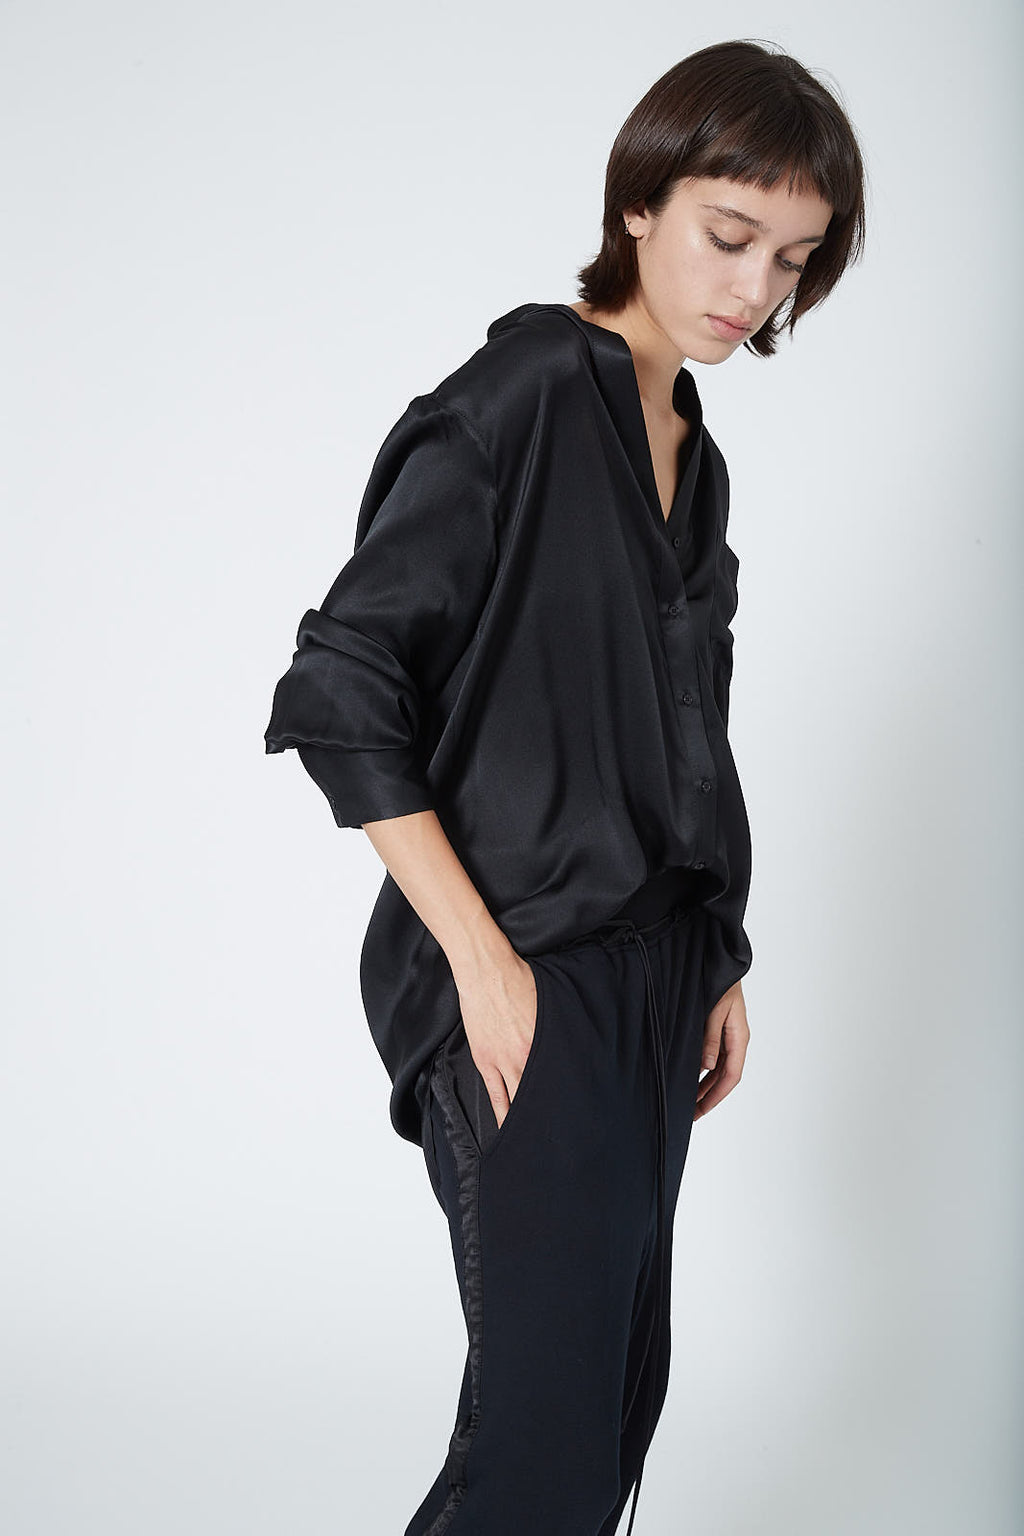 KES Elongated Pleated Back Button-Up -  Black